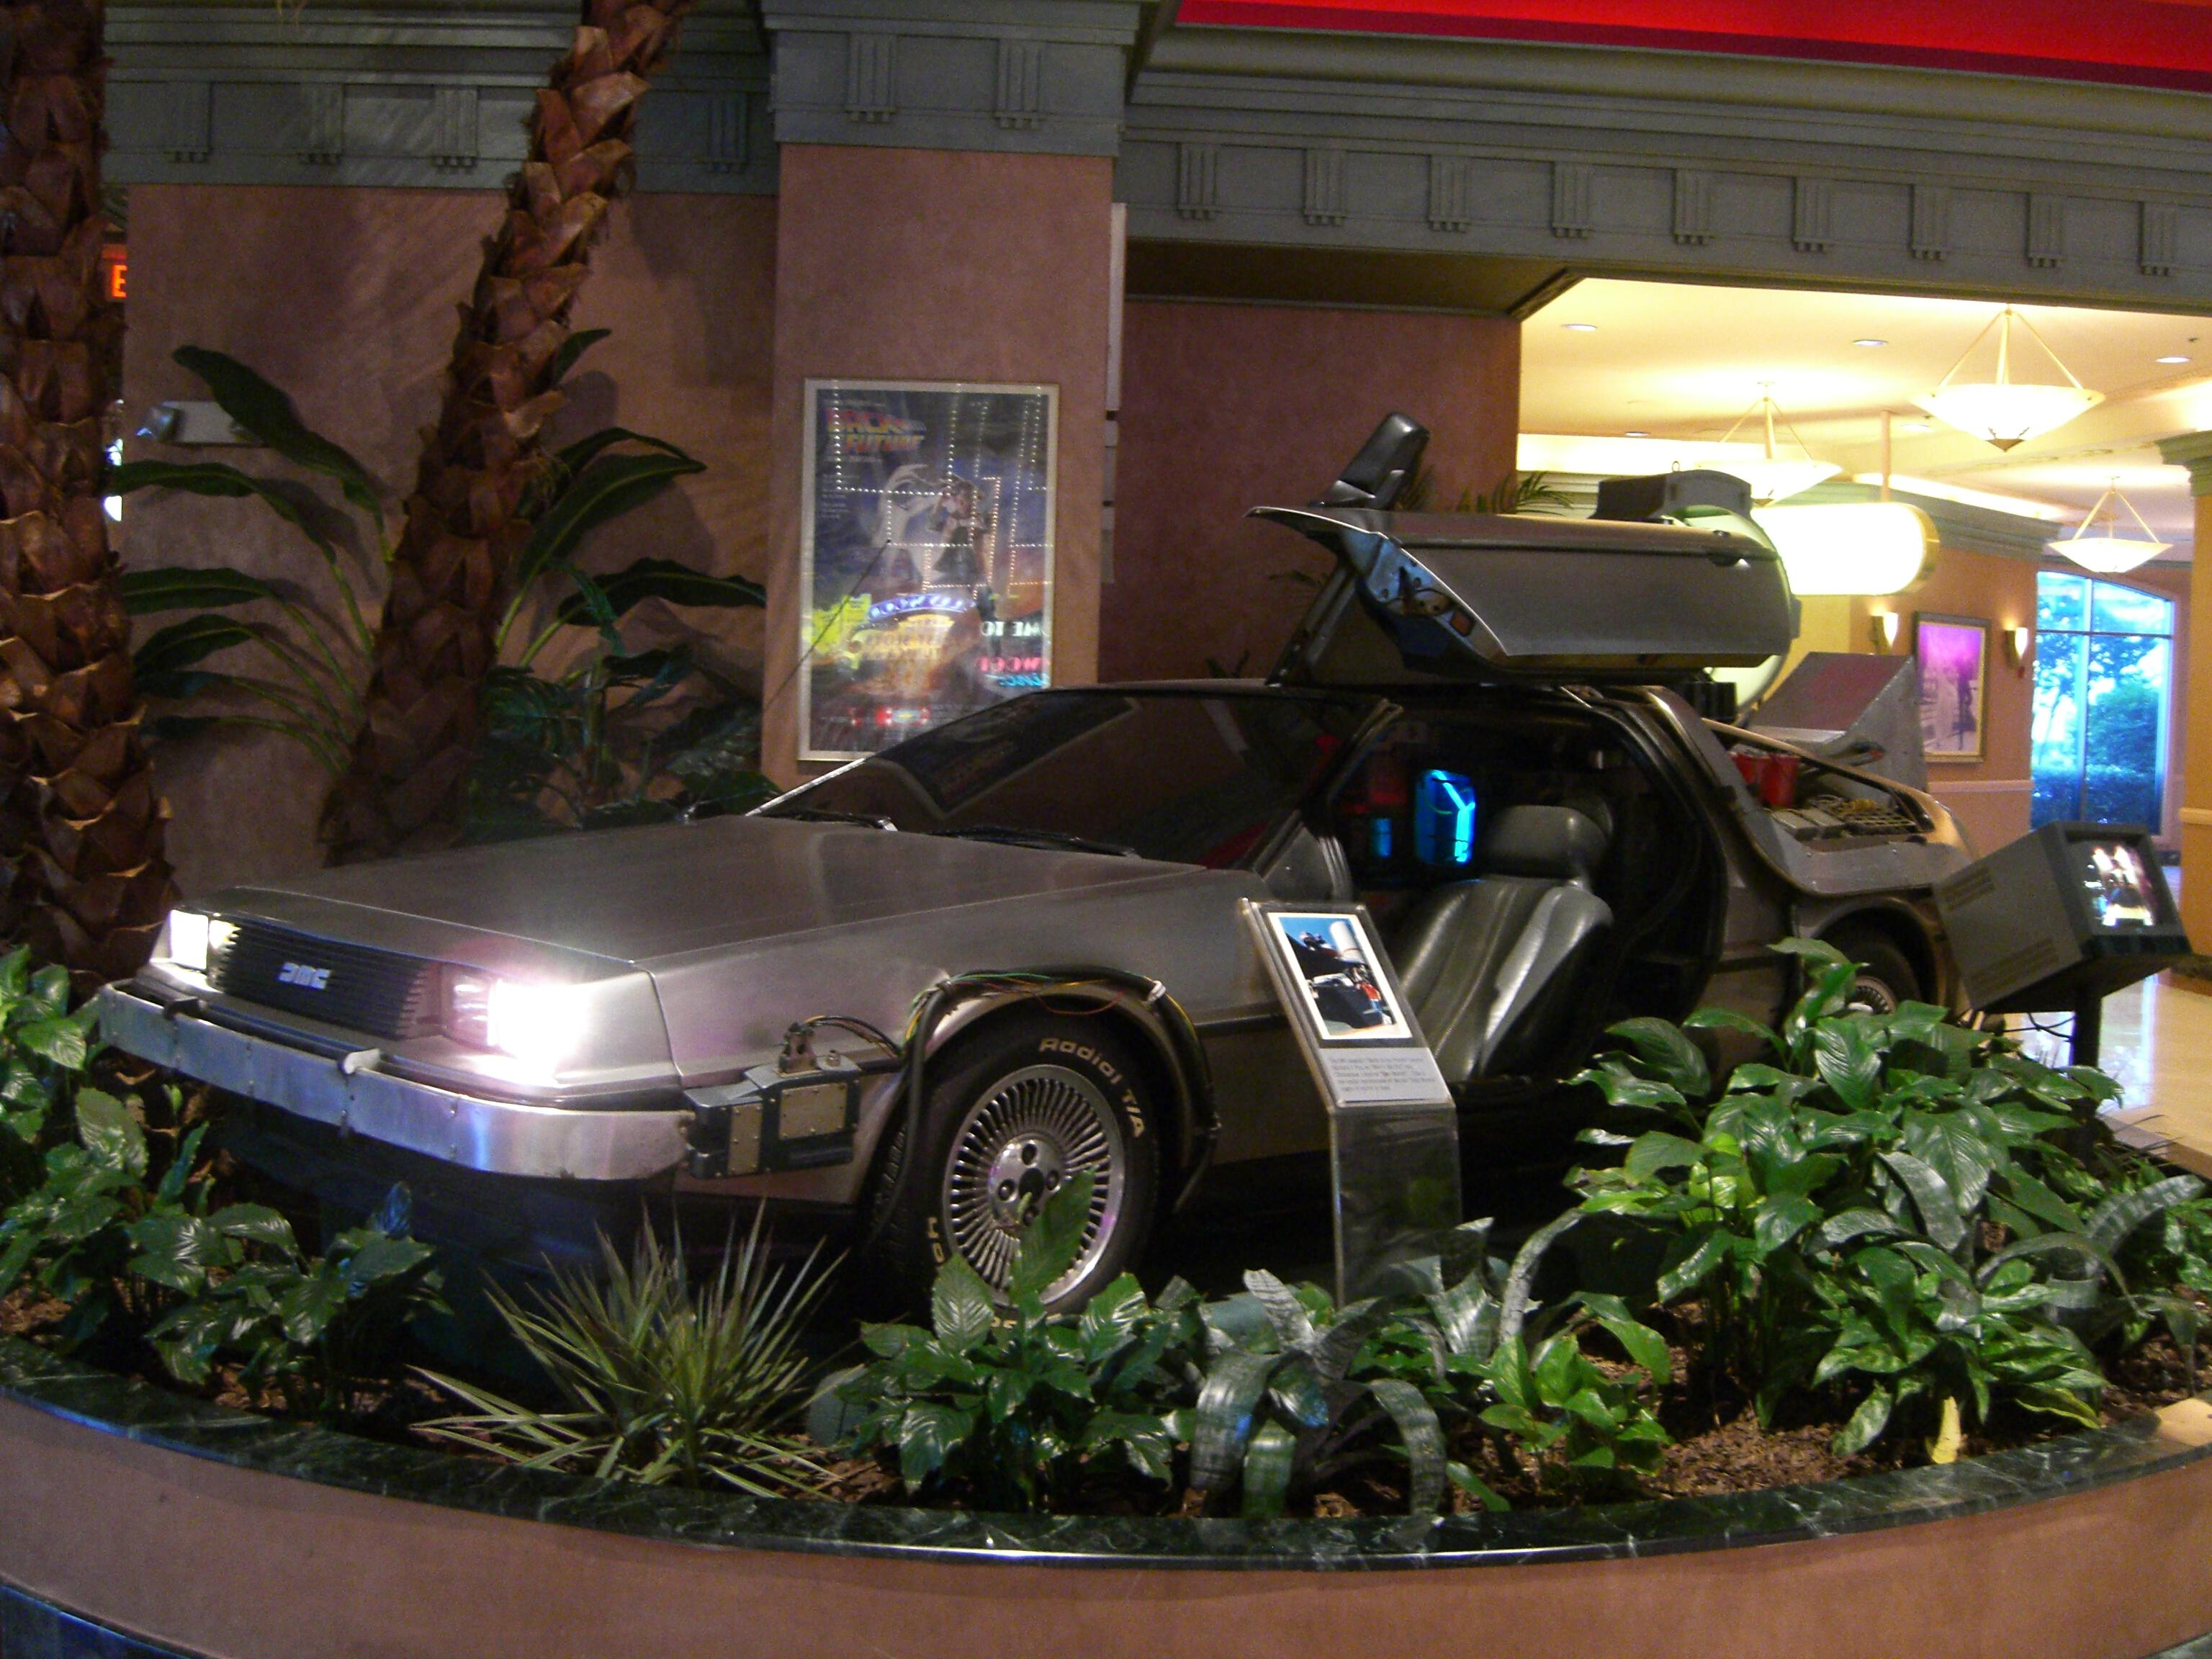 Back to the Future DeLorean studio reproduction - They are coming back